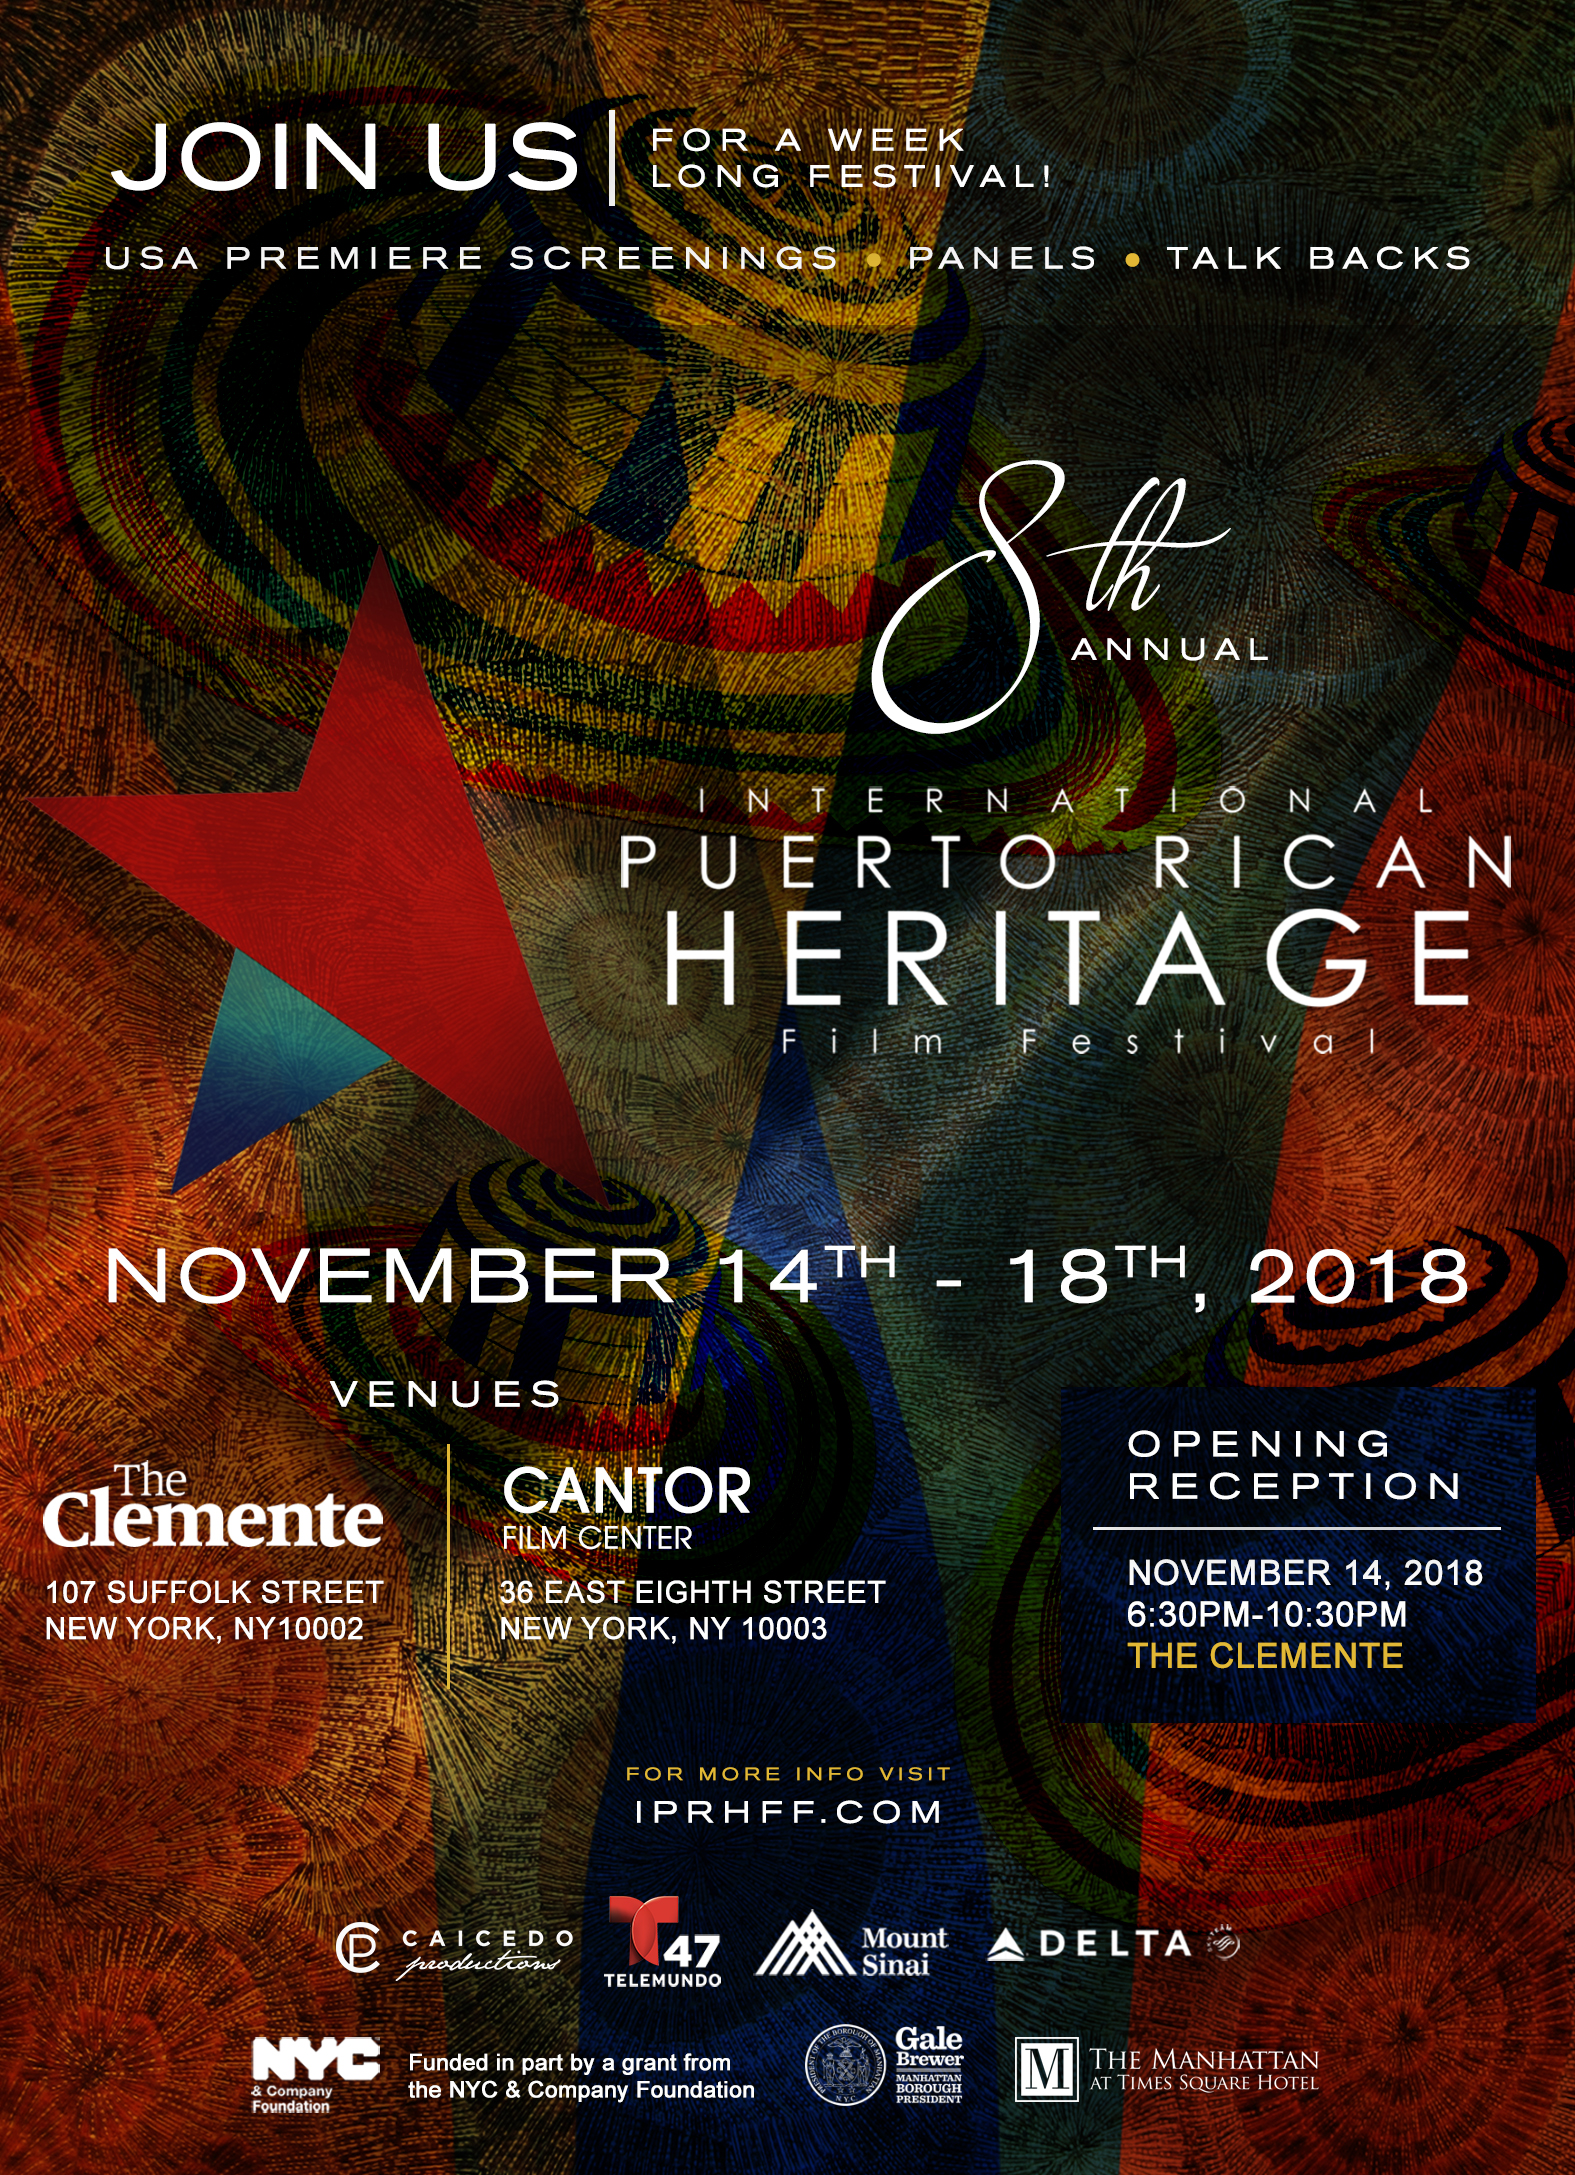 International Puerto Rican Heritage Film Festival